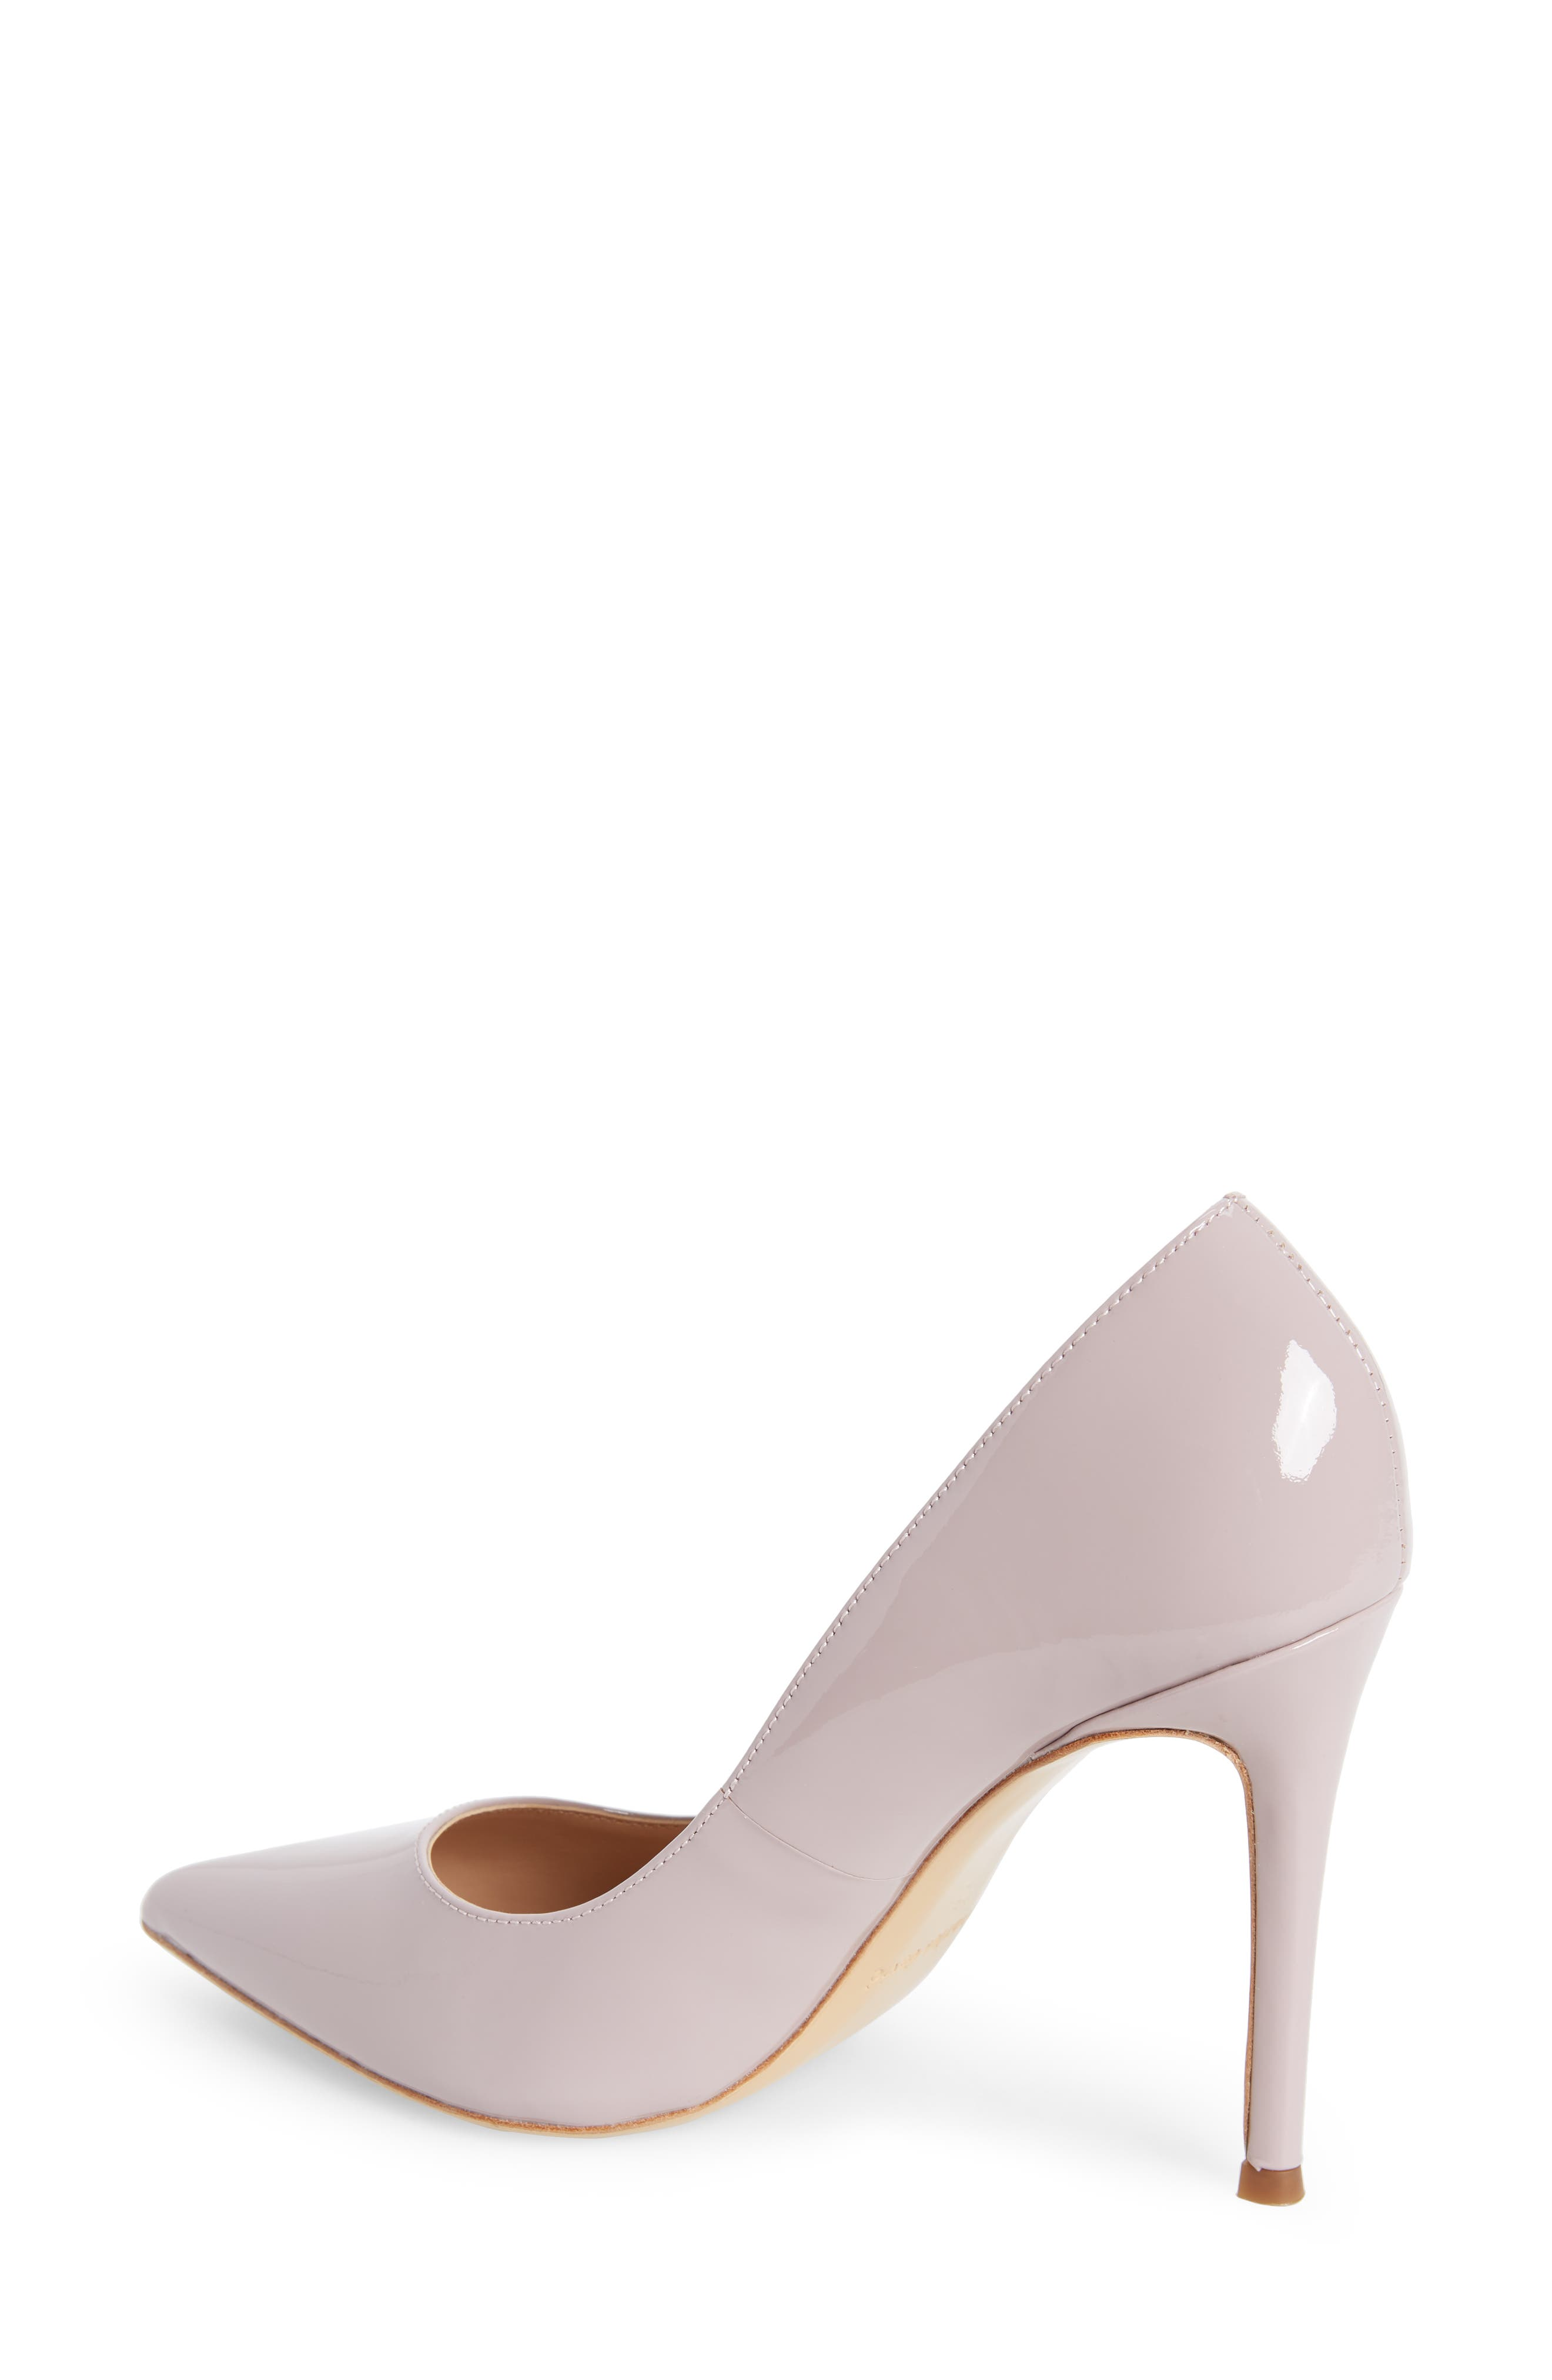 Calessi Pointy Toe Pump,                             Alternate thumbnail 2, color,                             LAVENDER PATENT LEATHER